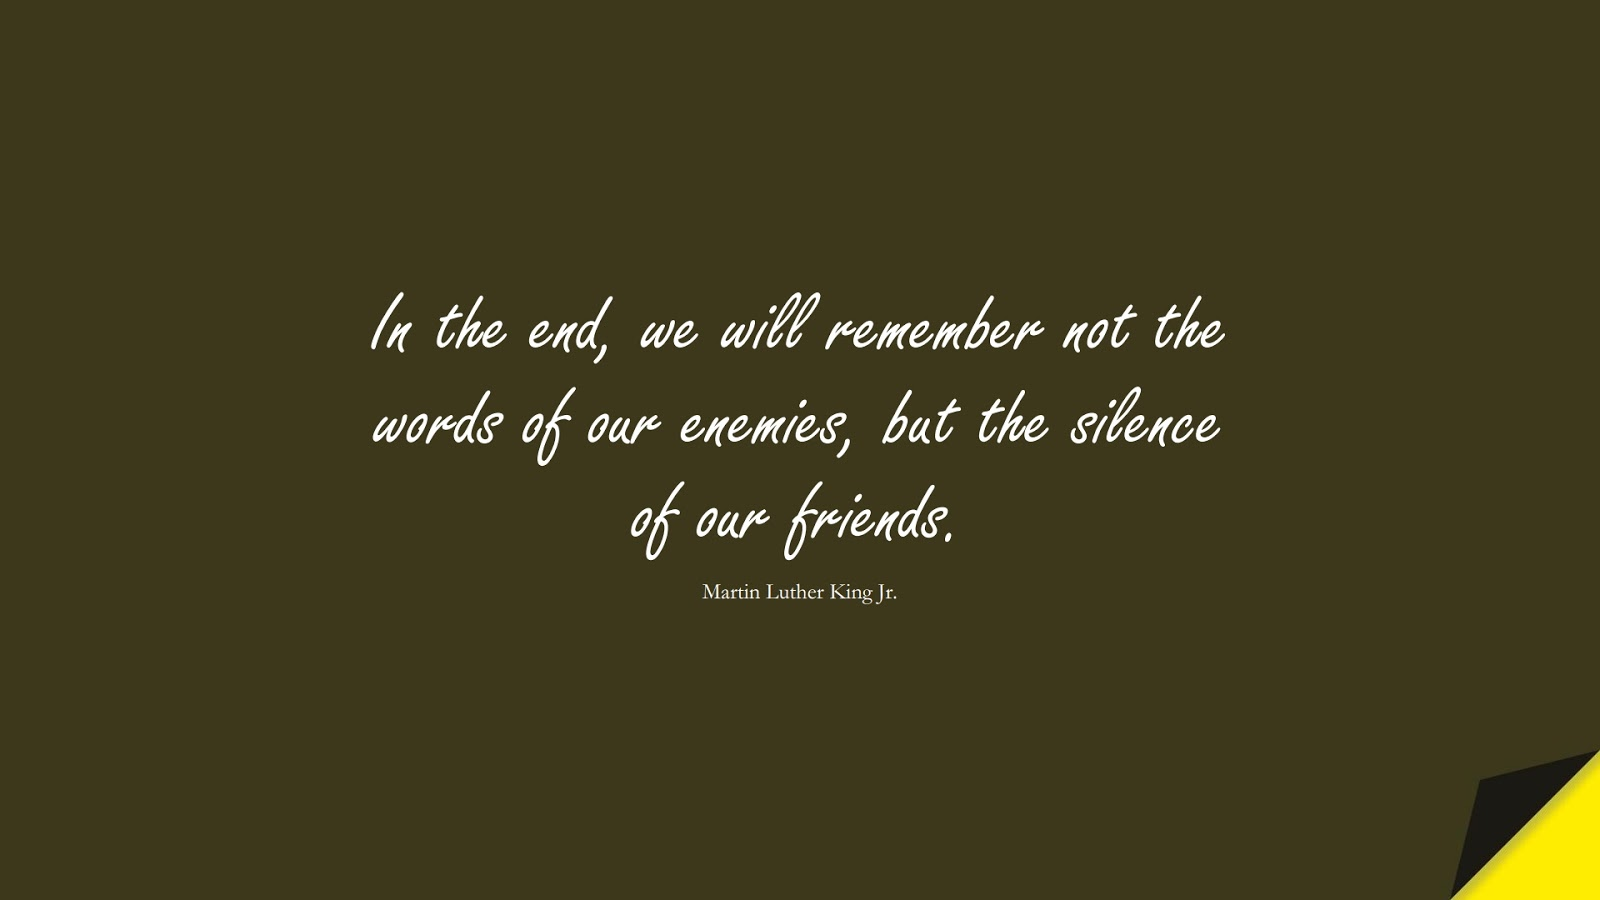 In the end, we will remember not the words of our enemies, but the silence of our friends. (Martin Luther King Jr.);  #MartinLutherKingJrQuotes